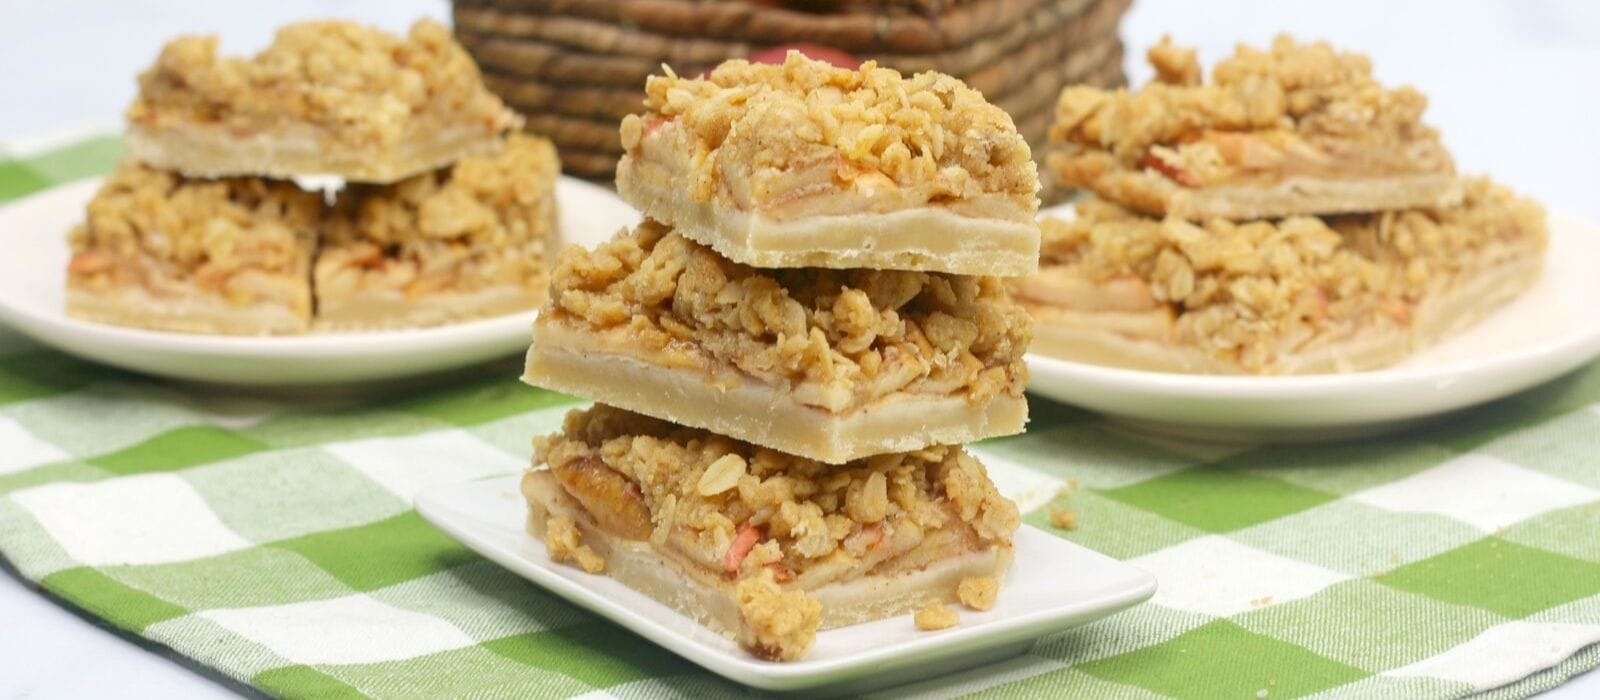 Bourbon Apple Bars| Bourbon Apple Bars Recipe| How to Make Bourbon Apple Bars| What are Bourbon Apple Bars| Can Bourbon Apple Bars Make me Drunk| #bourbon #alcoholnsnacks #applebars #recipe